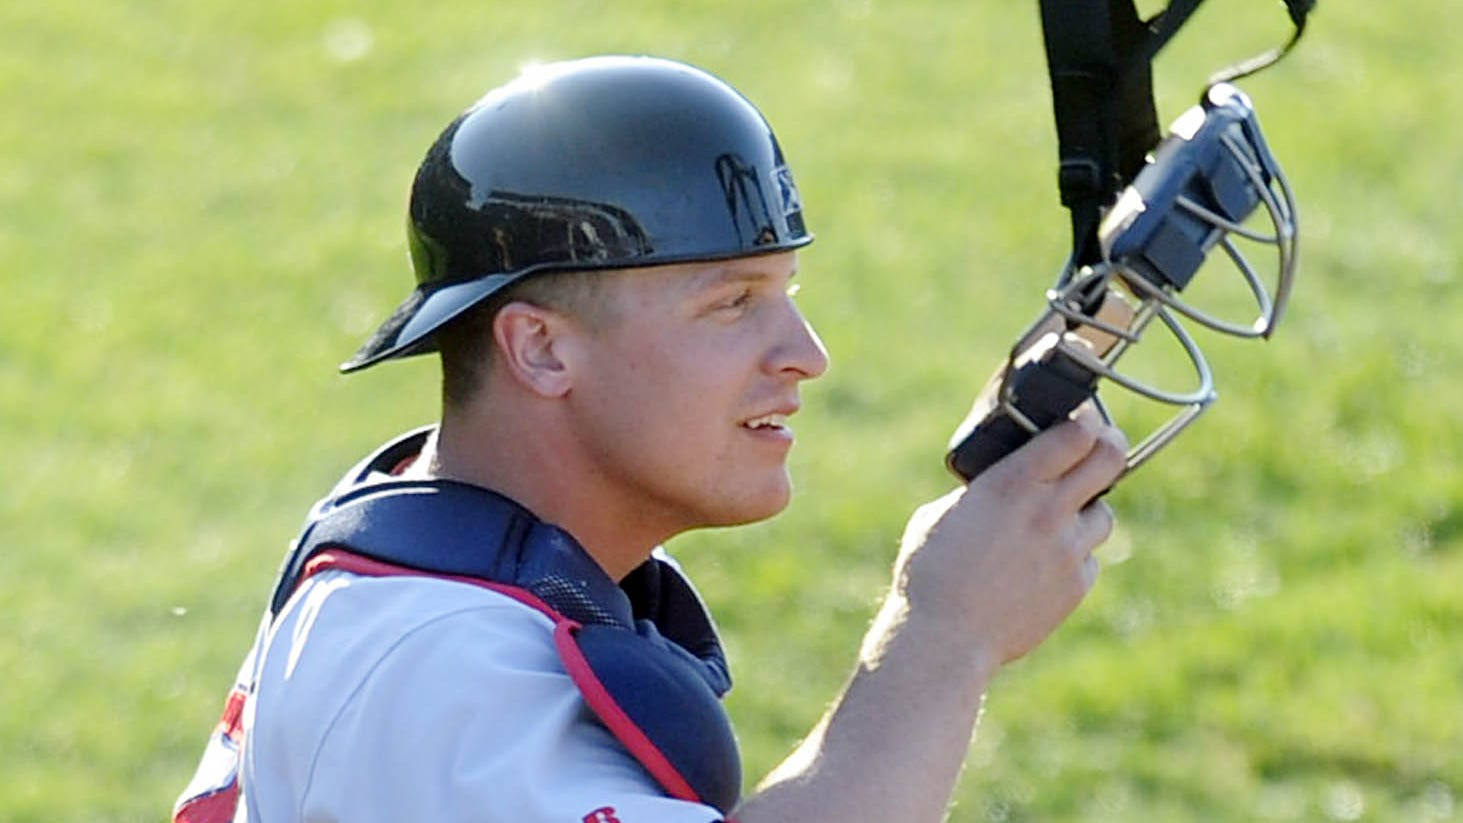 Erie native Tim Federowicz will catch for Team USA in Olympic baseball tournament